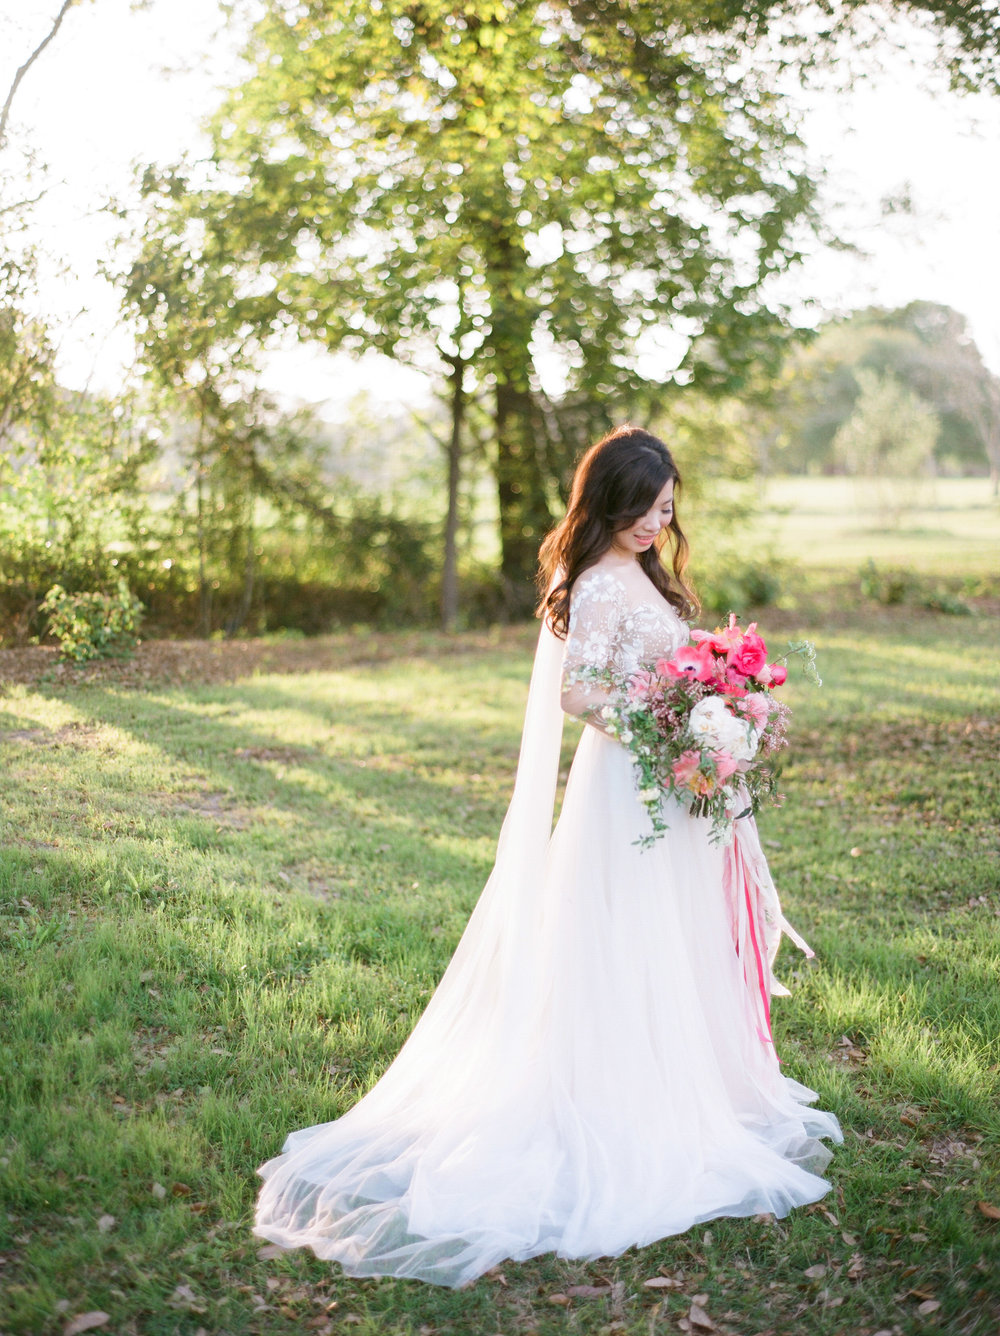 The-Knot-50-Weddings-50-States-Texas-Winner-Dana-Fernandez-photography-houston-wedding-photographer-film-fine-art-destination-14.jpg